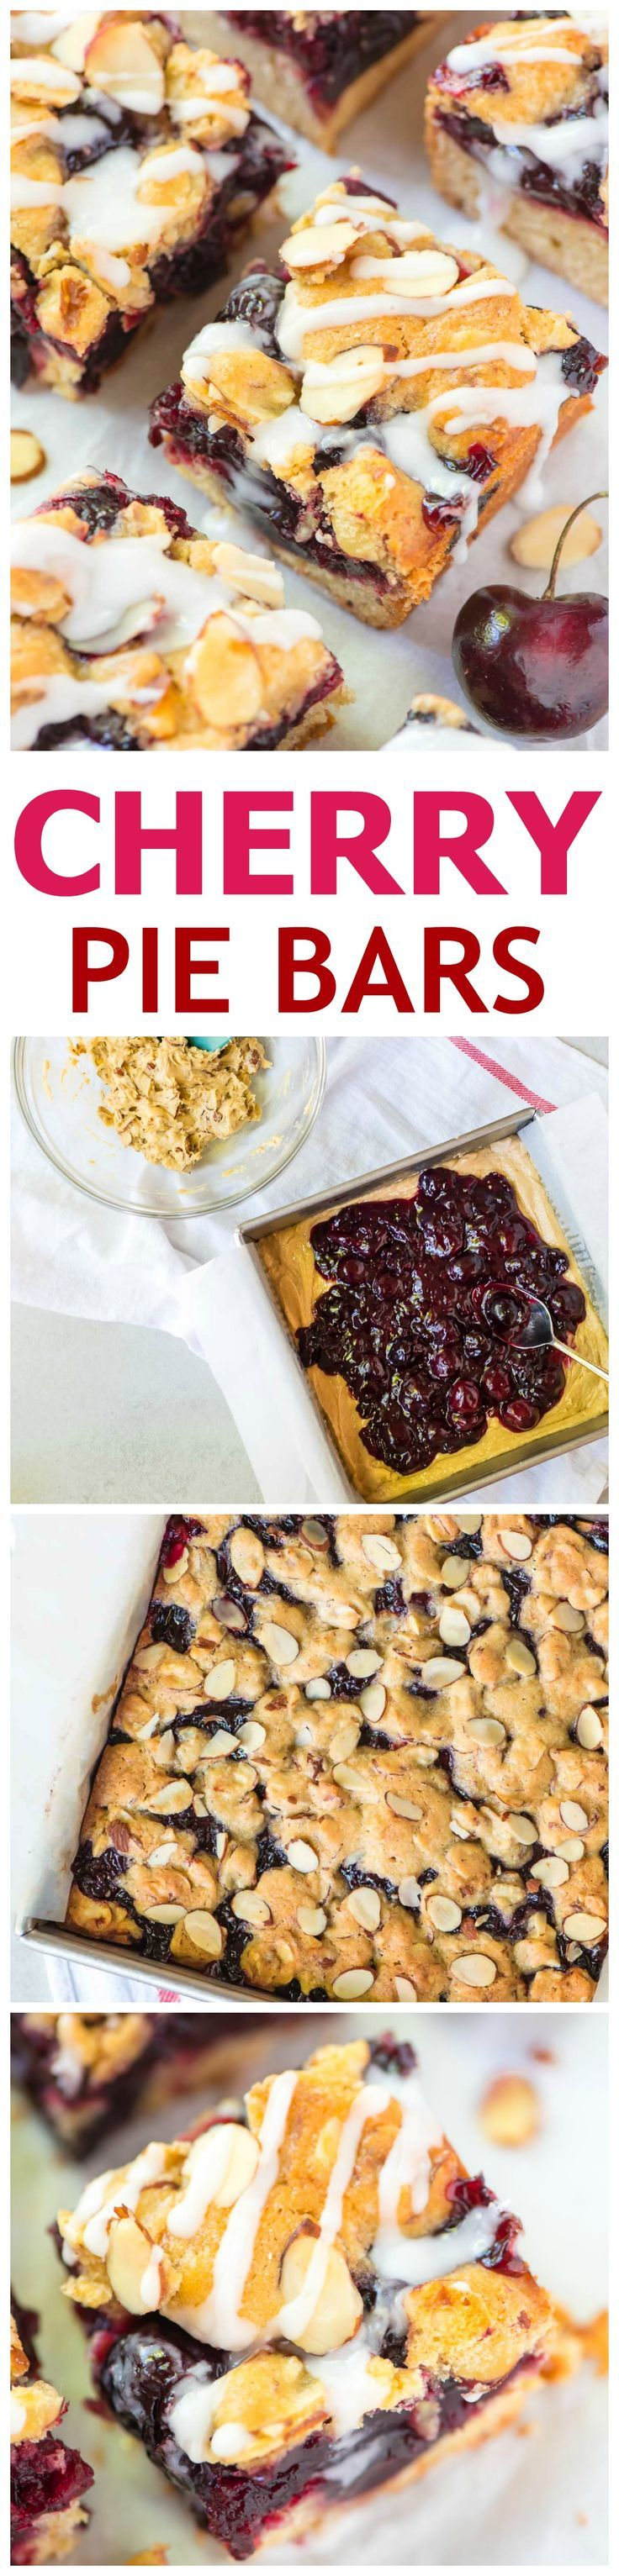 Cherry Bars — a cross between a pie bar and a crumb bar, this recipe for cherry pie bars is THE BEST! Layers of buttery shortbread bursting with sweet cherry filling, with more buttery crumbs and almond glaze on top. Everyone loved these easy dessert bars! @Well Plated